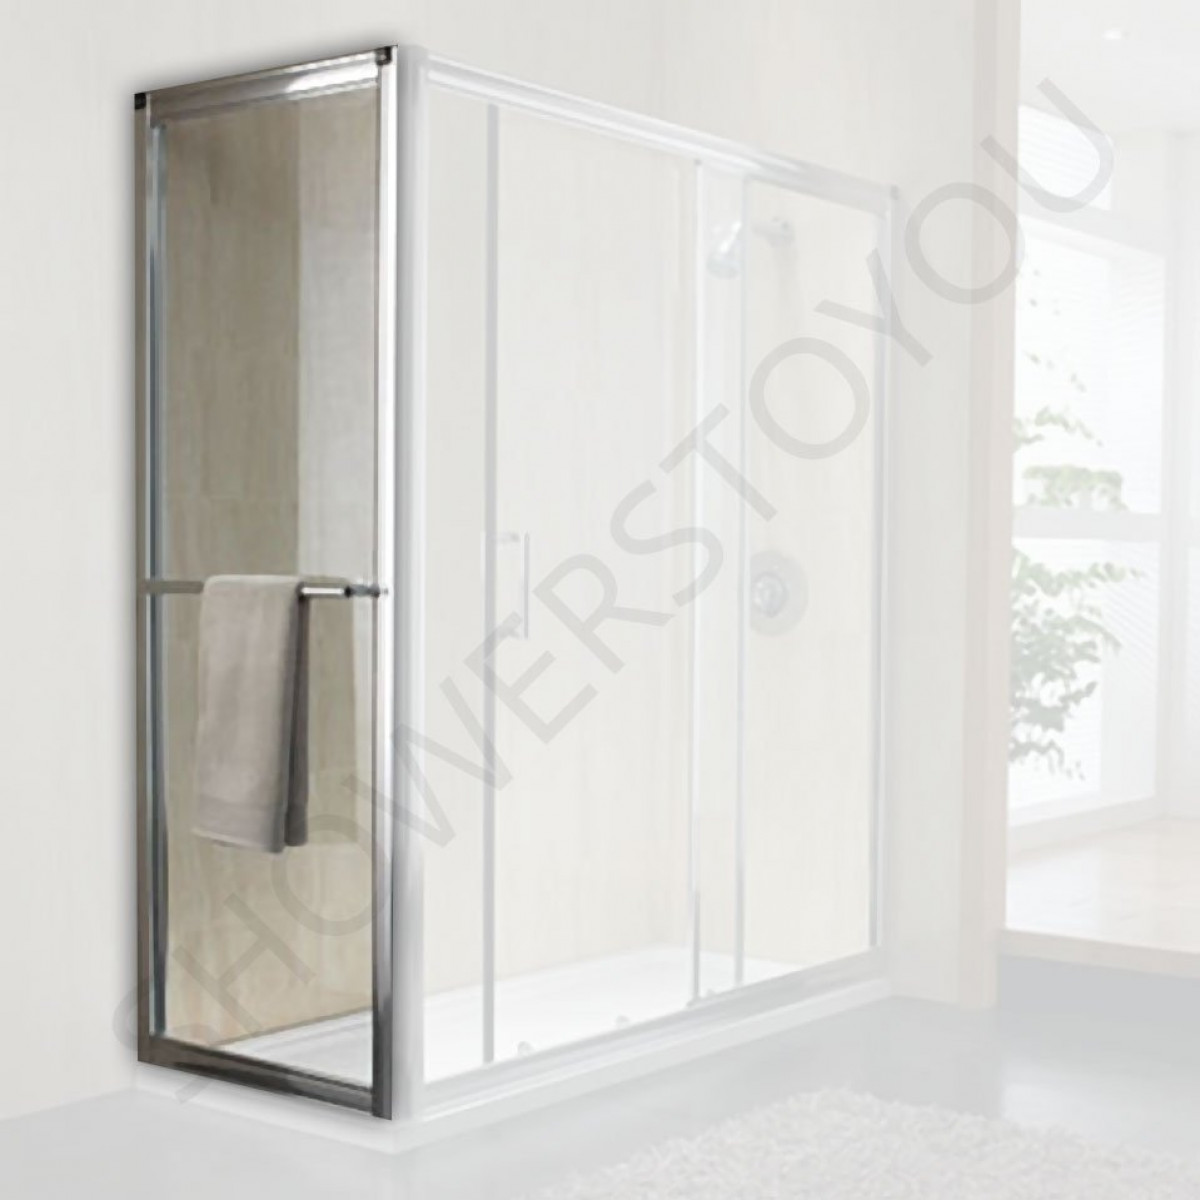 Twyford hydr8 1000mm sliding shower door h86500cp for 1000mm shower door